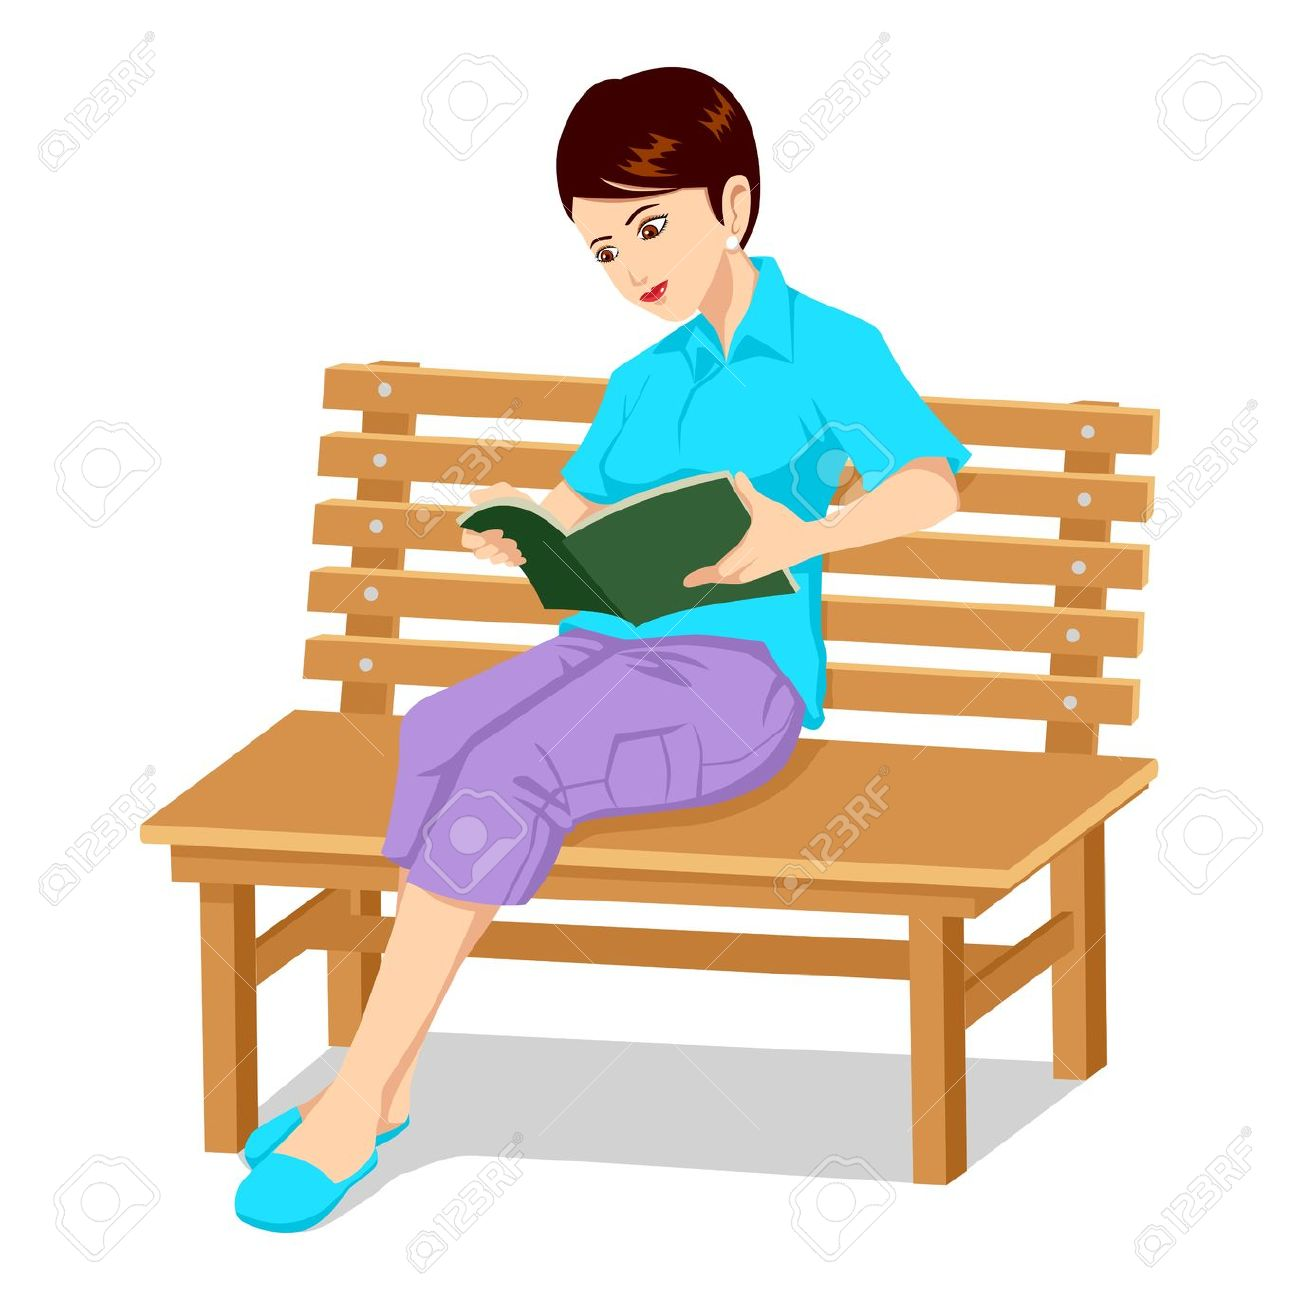 Seat bench clipart - Clipground